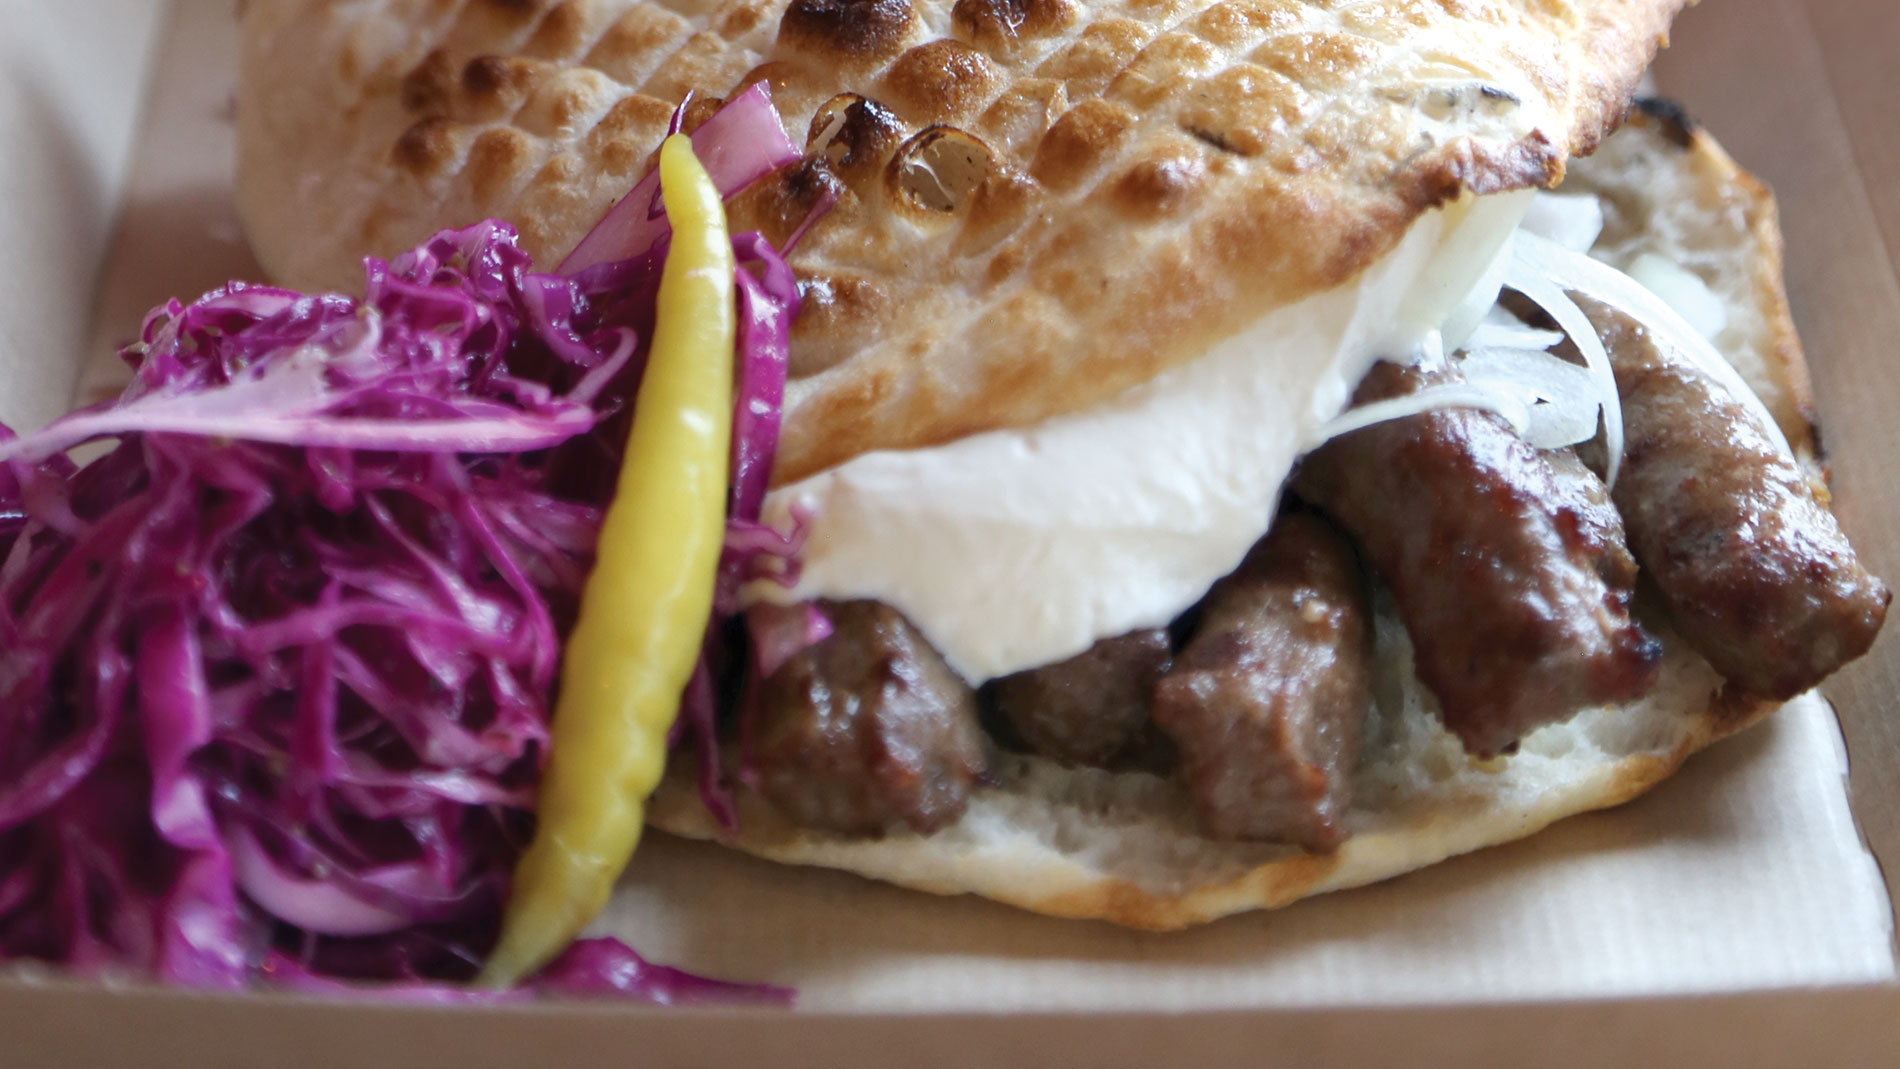 Cevapi from balkan treat box in webster groves